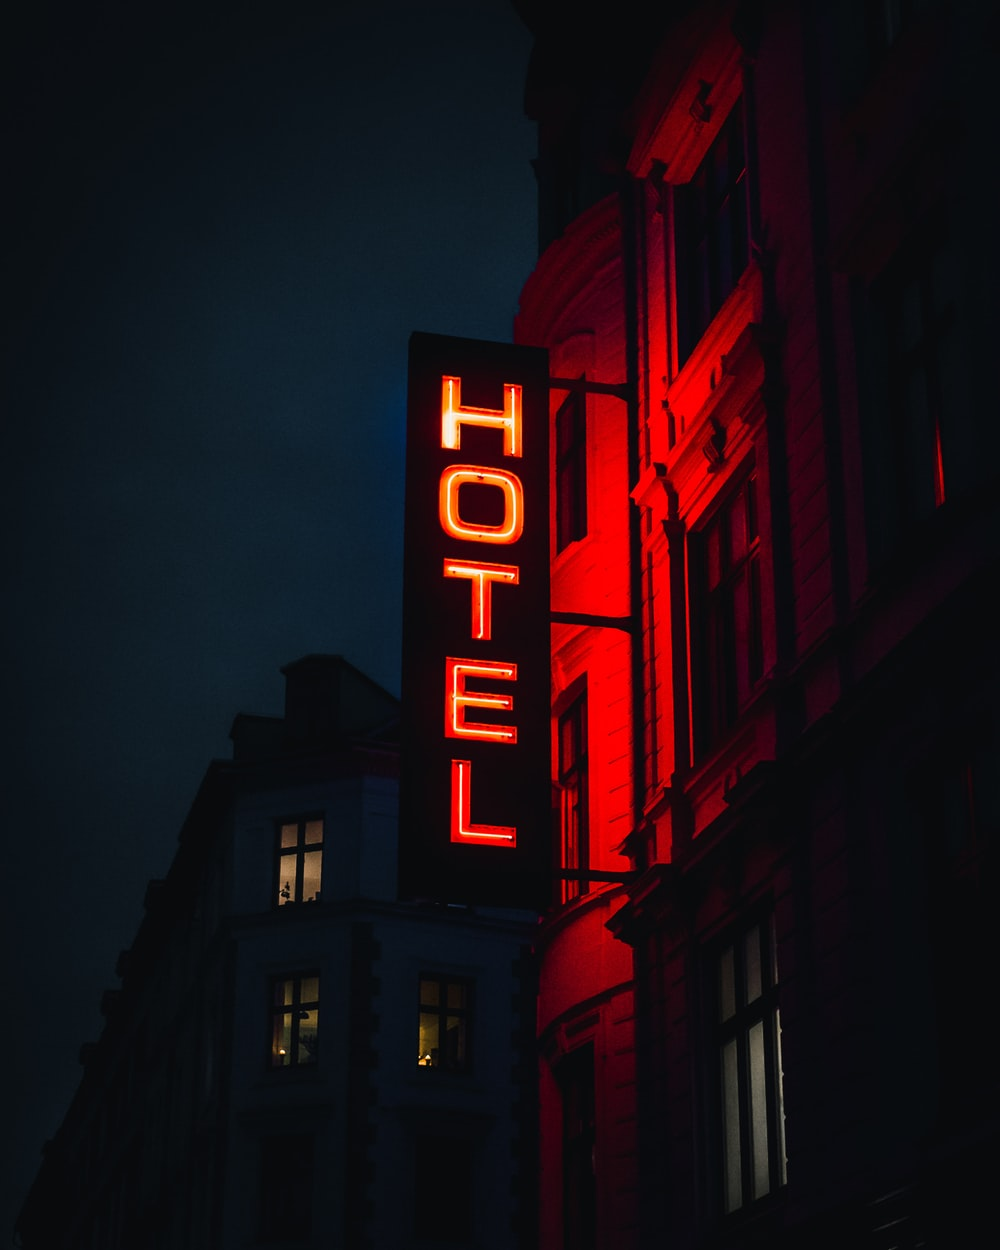 turned-on Hotel LED signage